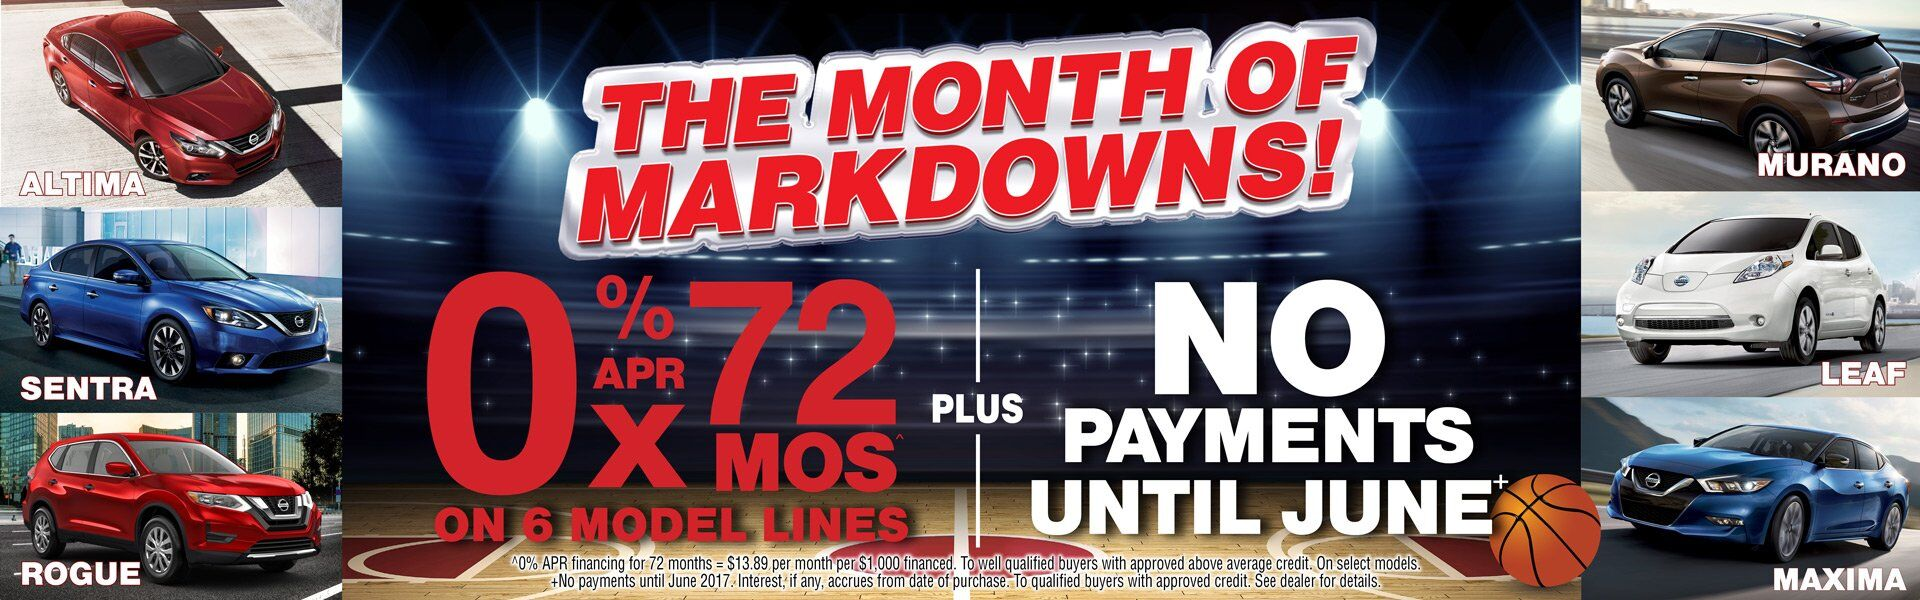 the month a markdowns